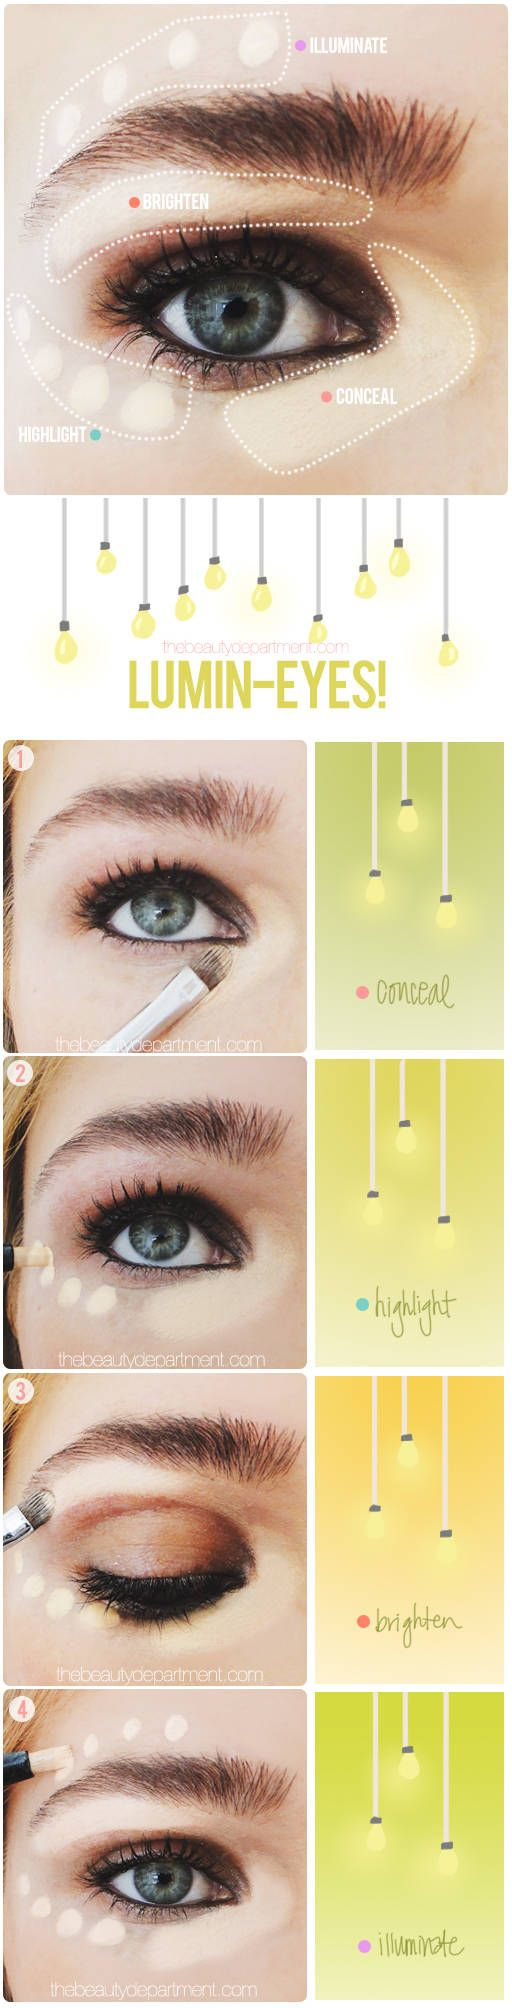 How to illuminate your eyes, a step-by-step guide from thebeautydepartment.com